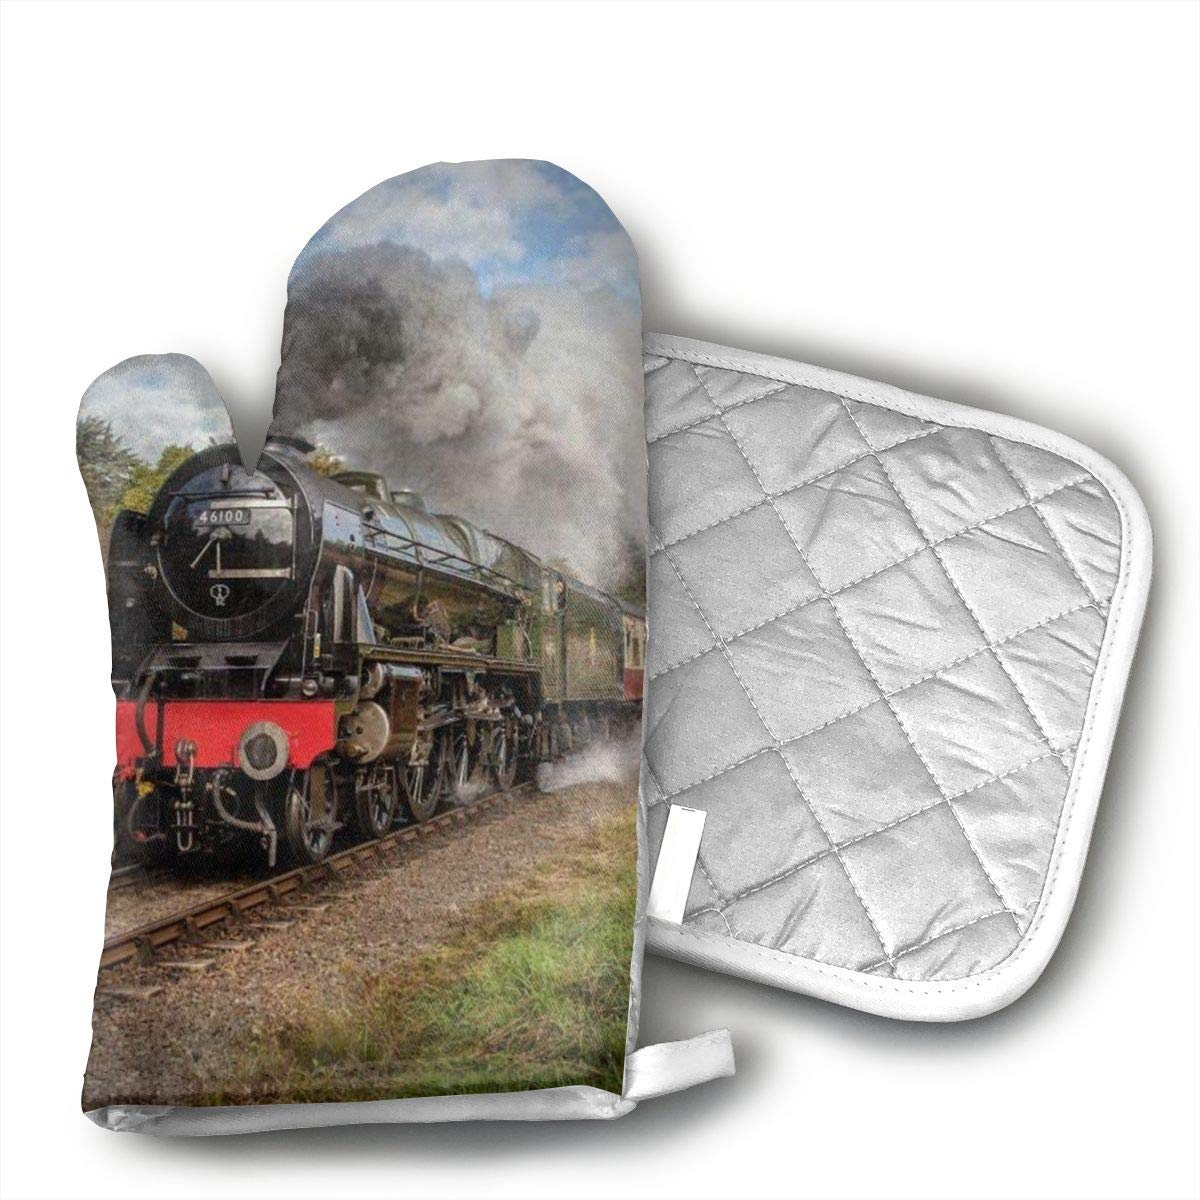 VFSFJKBG Steam Train Scottish Oven Gloves, High Heat Resistance, Machine Washable High Heat Resistant Polyester Filling for Thanks Giving, Christmas